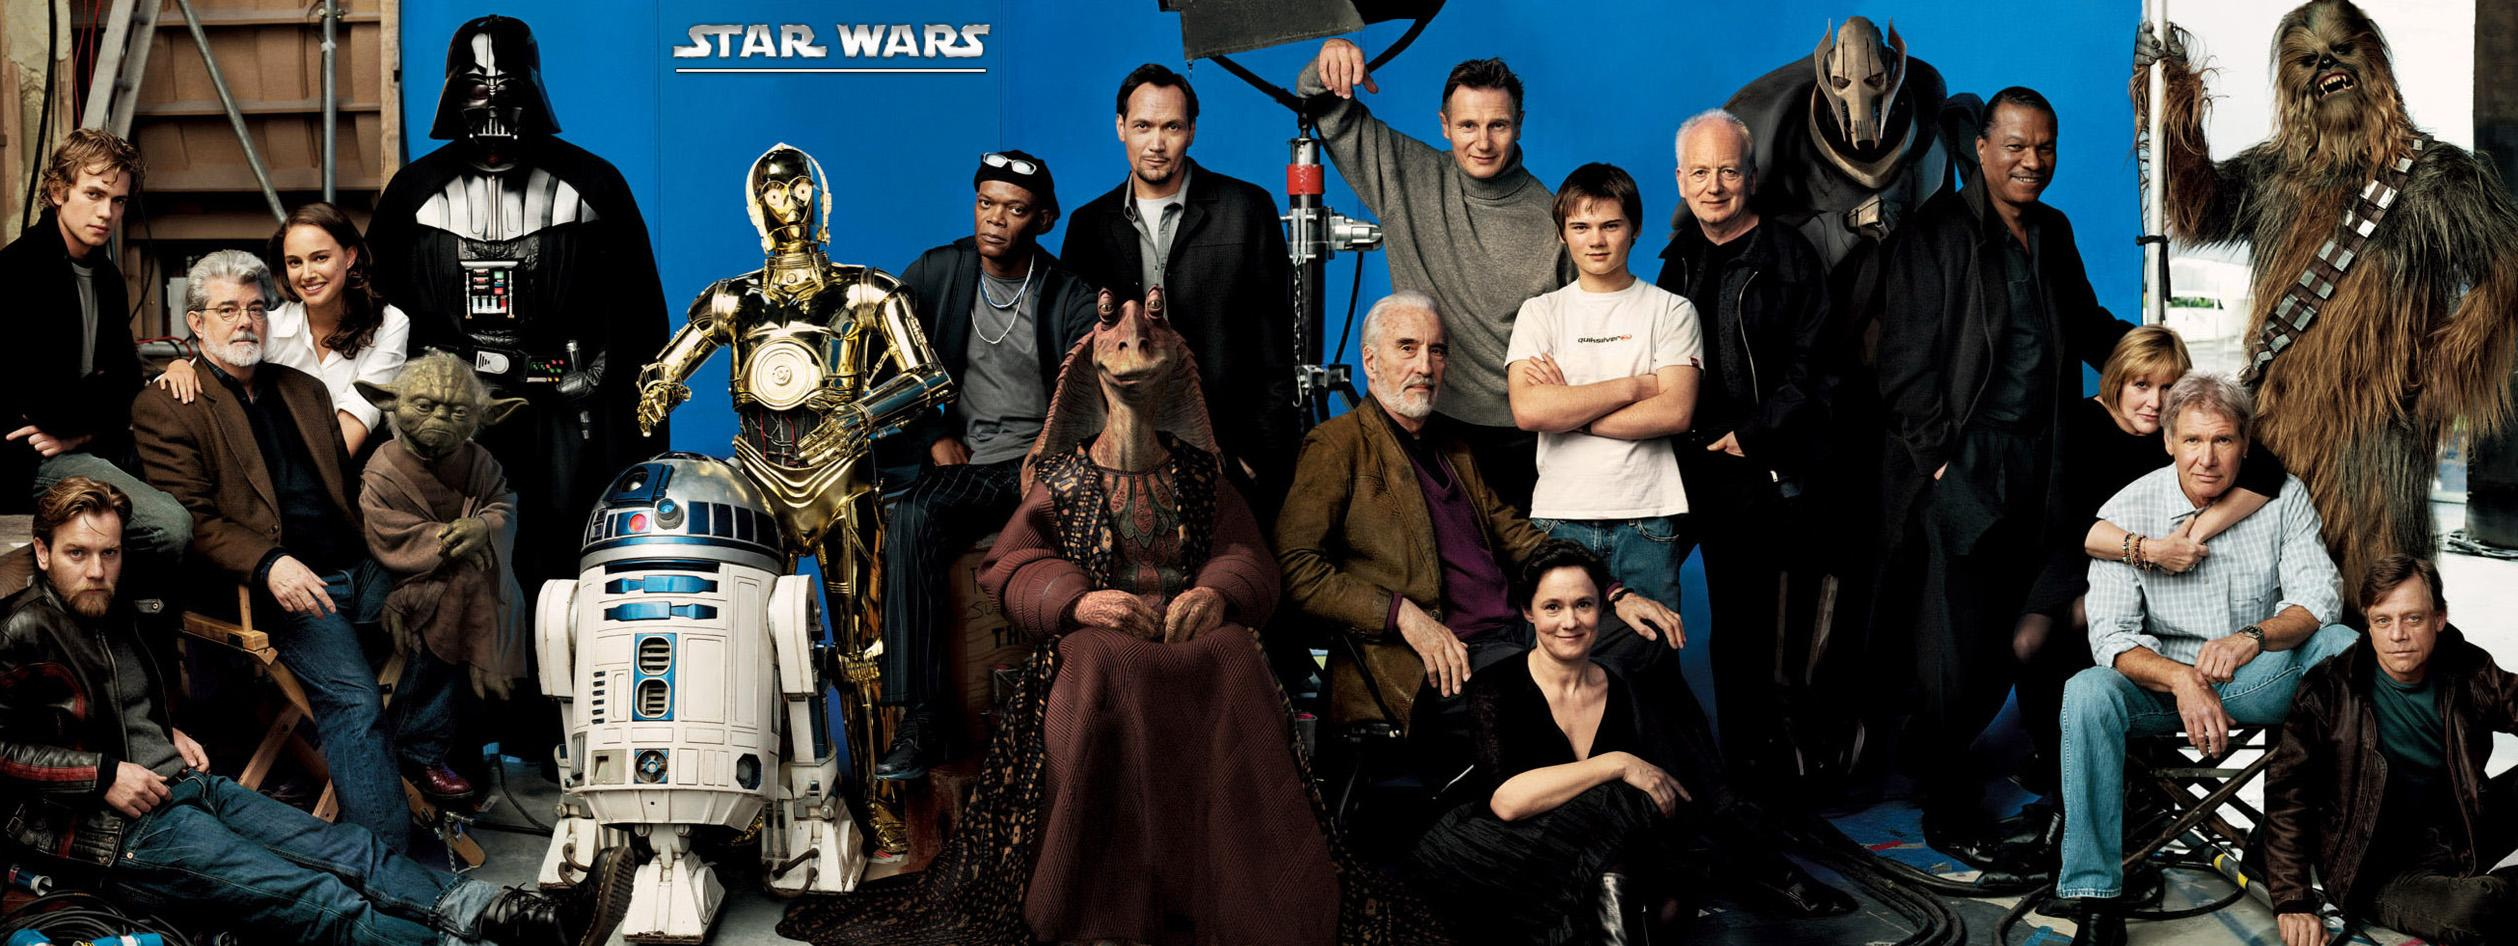 vanity fair star wars - Star Wars Photo (29334722) - Fanpop